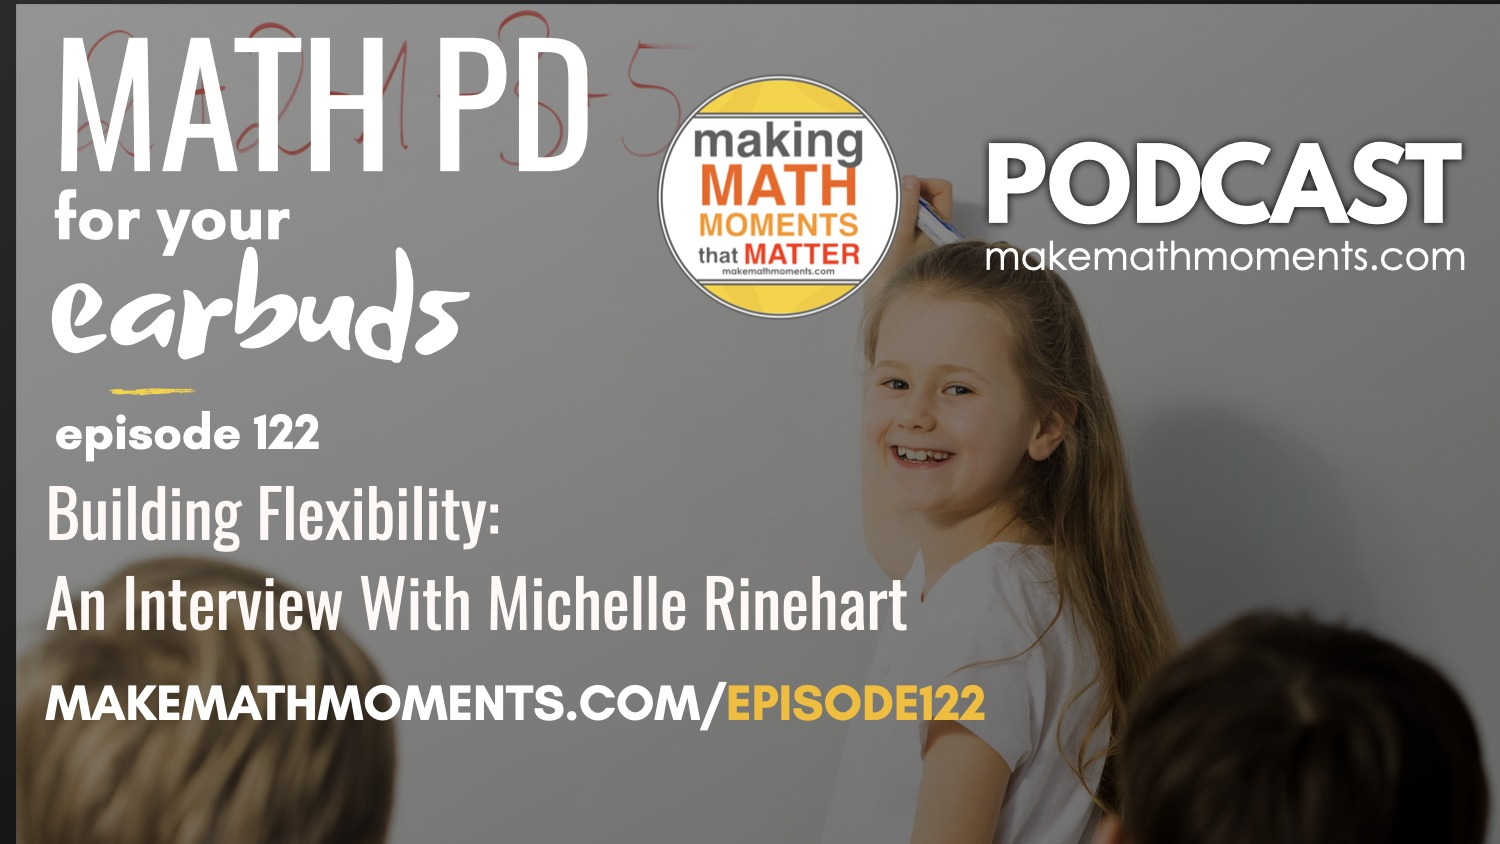 Episode #122: Building Flexibility: An Interview With Michelle Rinehart